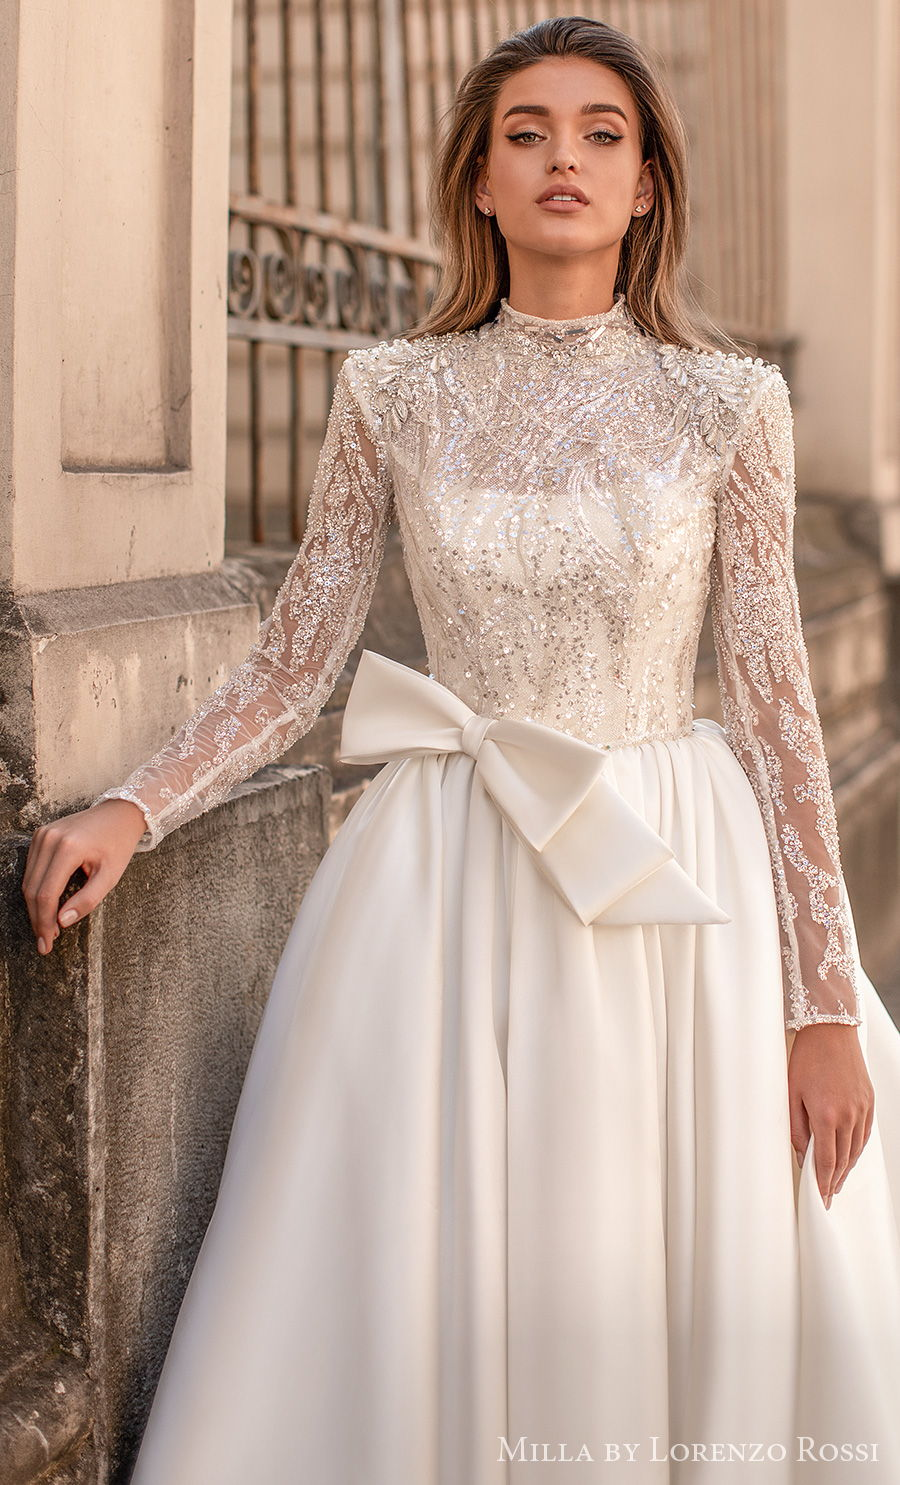 milla lorenzo rossi 2021 bridal long sleeves illusion high neck heavily embellished bodice glitter glamorous ball gown a  line wedding dress (georgette) mv